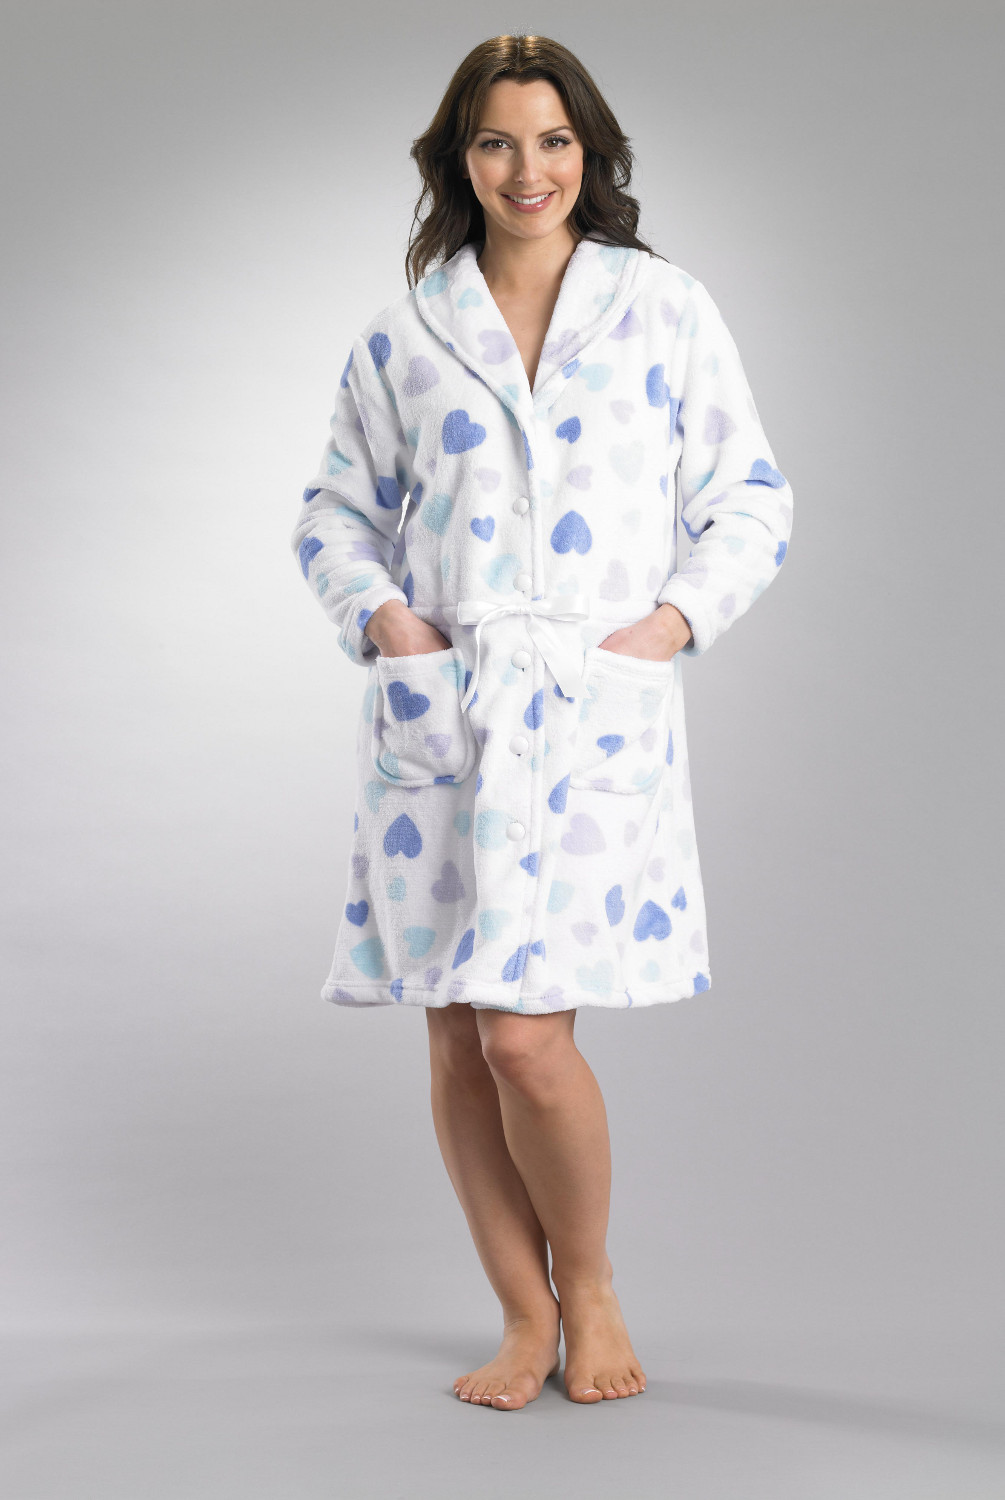 Slenderella Heart Pattern Button Up Bath Robe Ladies Soft Fleece